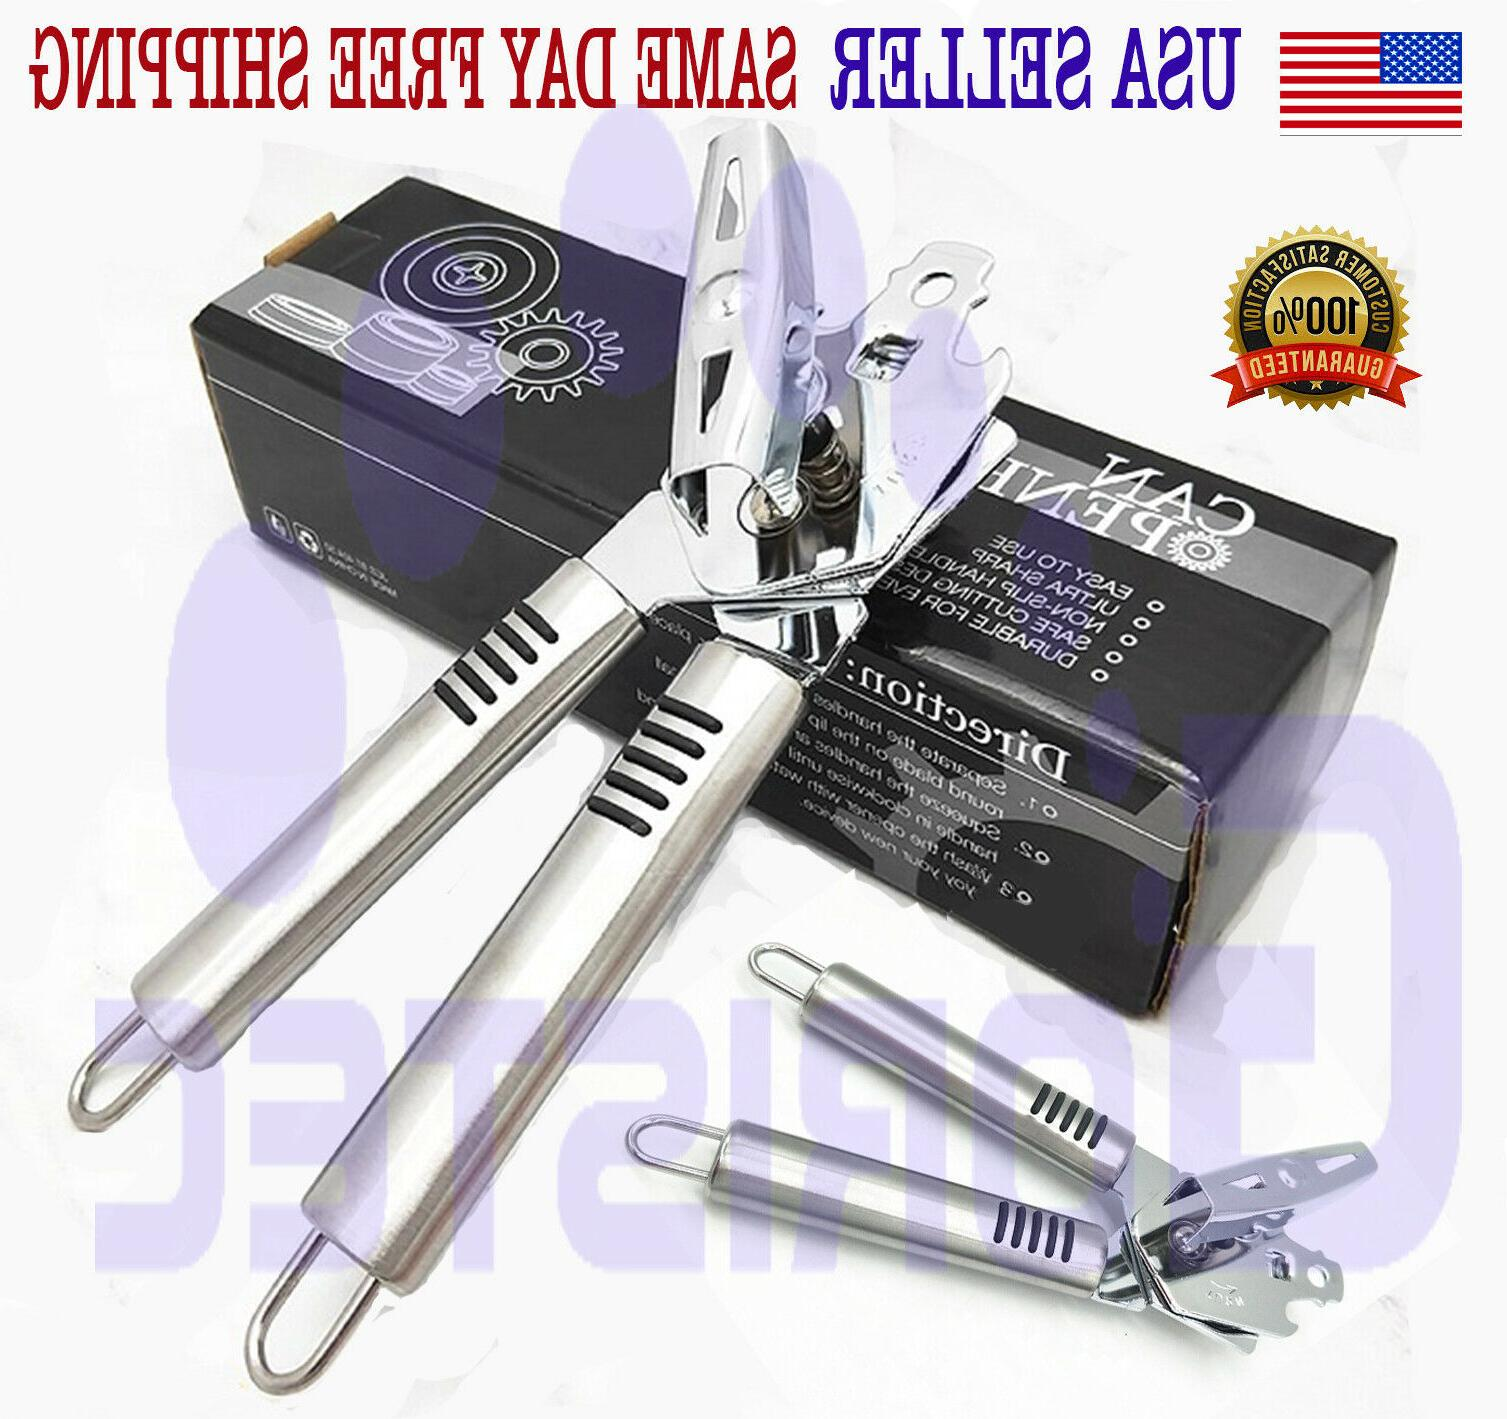 premium can opener stainless steel heavy duty